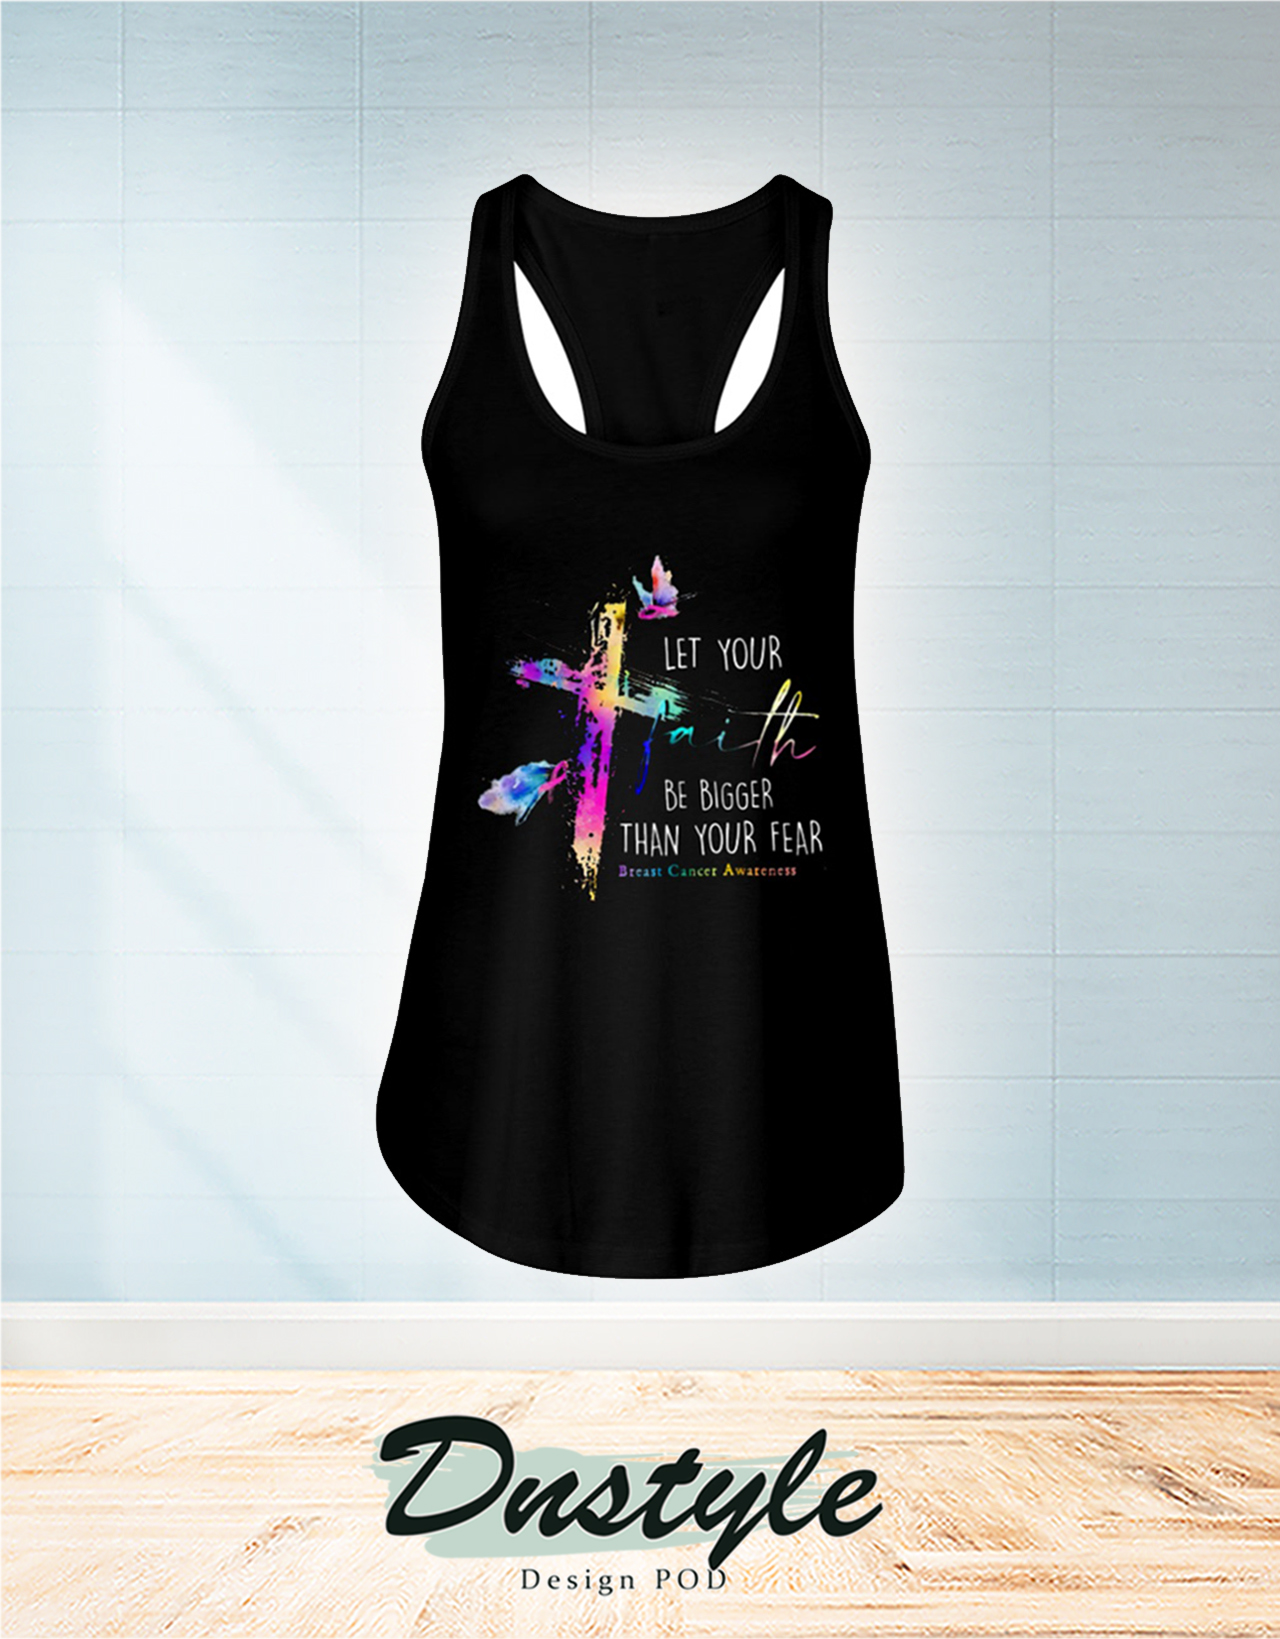 Let your faith be bigger than your fear beast cancer awareness flowy tank